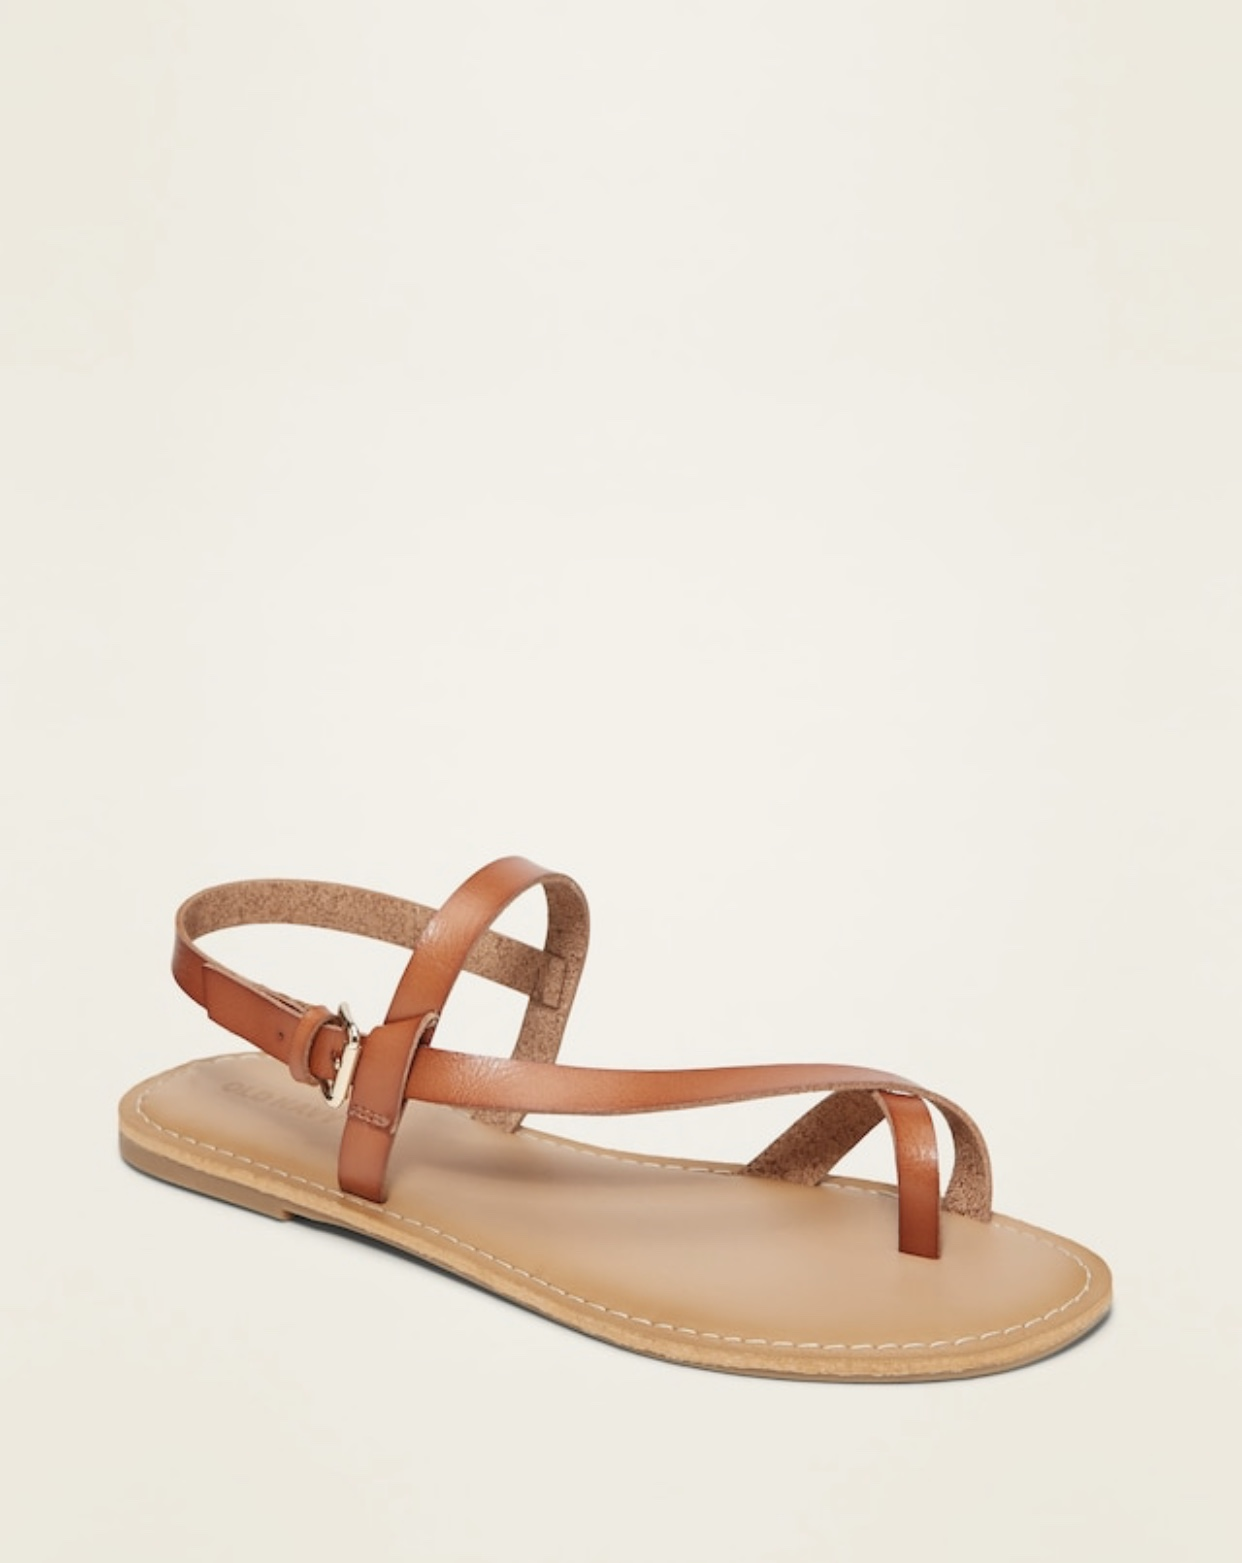 brown sandals from Old Navy